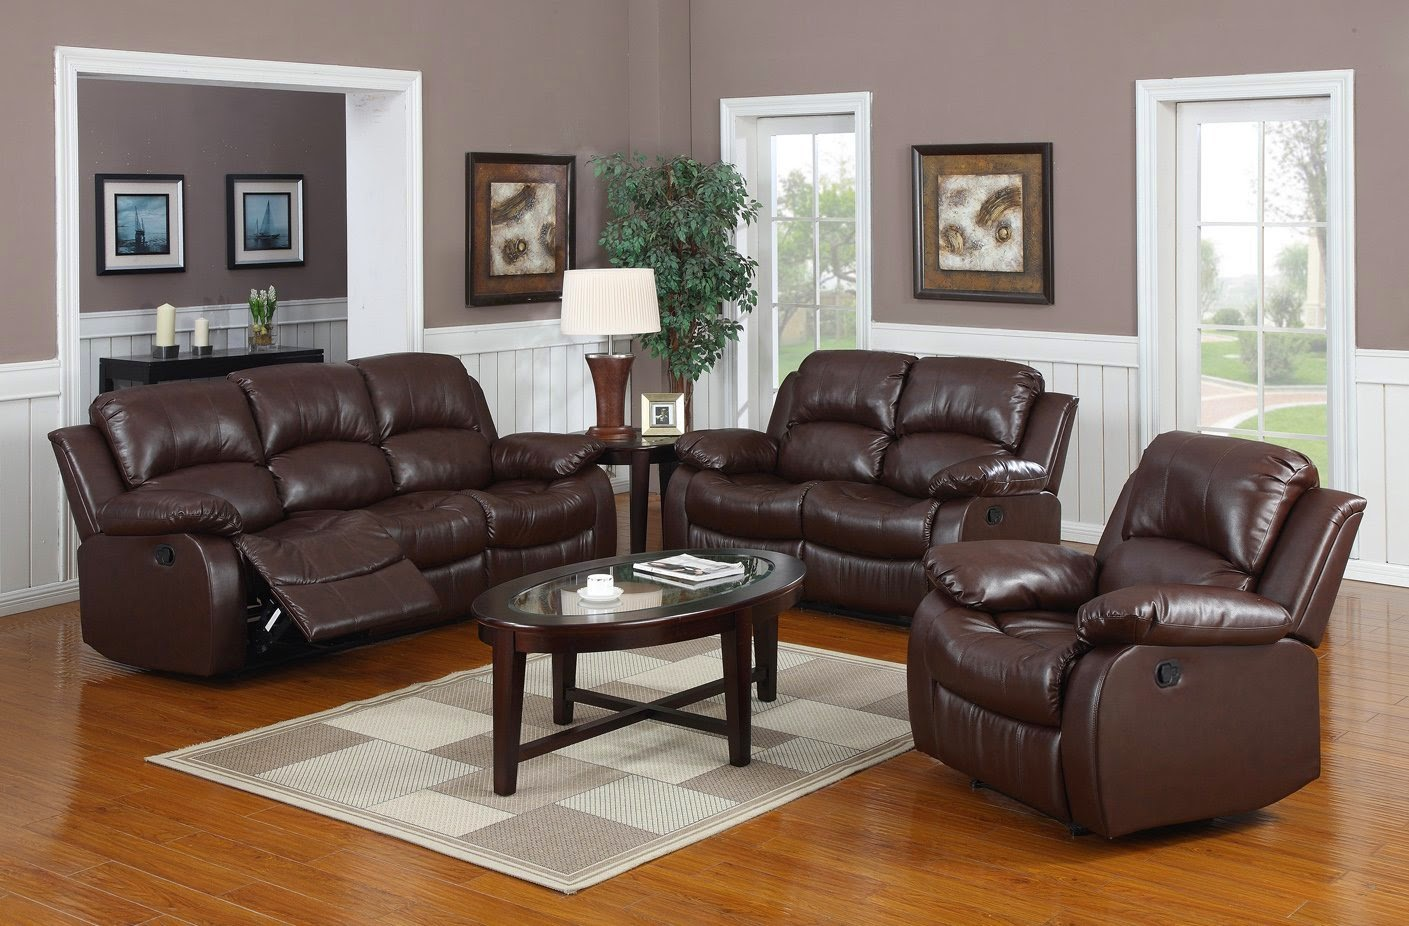 The Best Reclining Sofas Ratings Reviews: Cheap Faux Leather Recliner Sofas